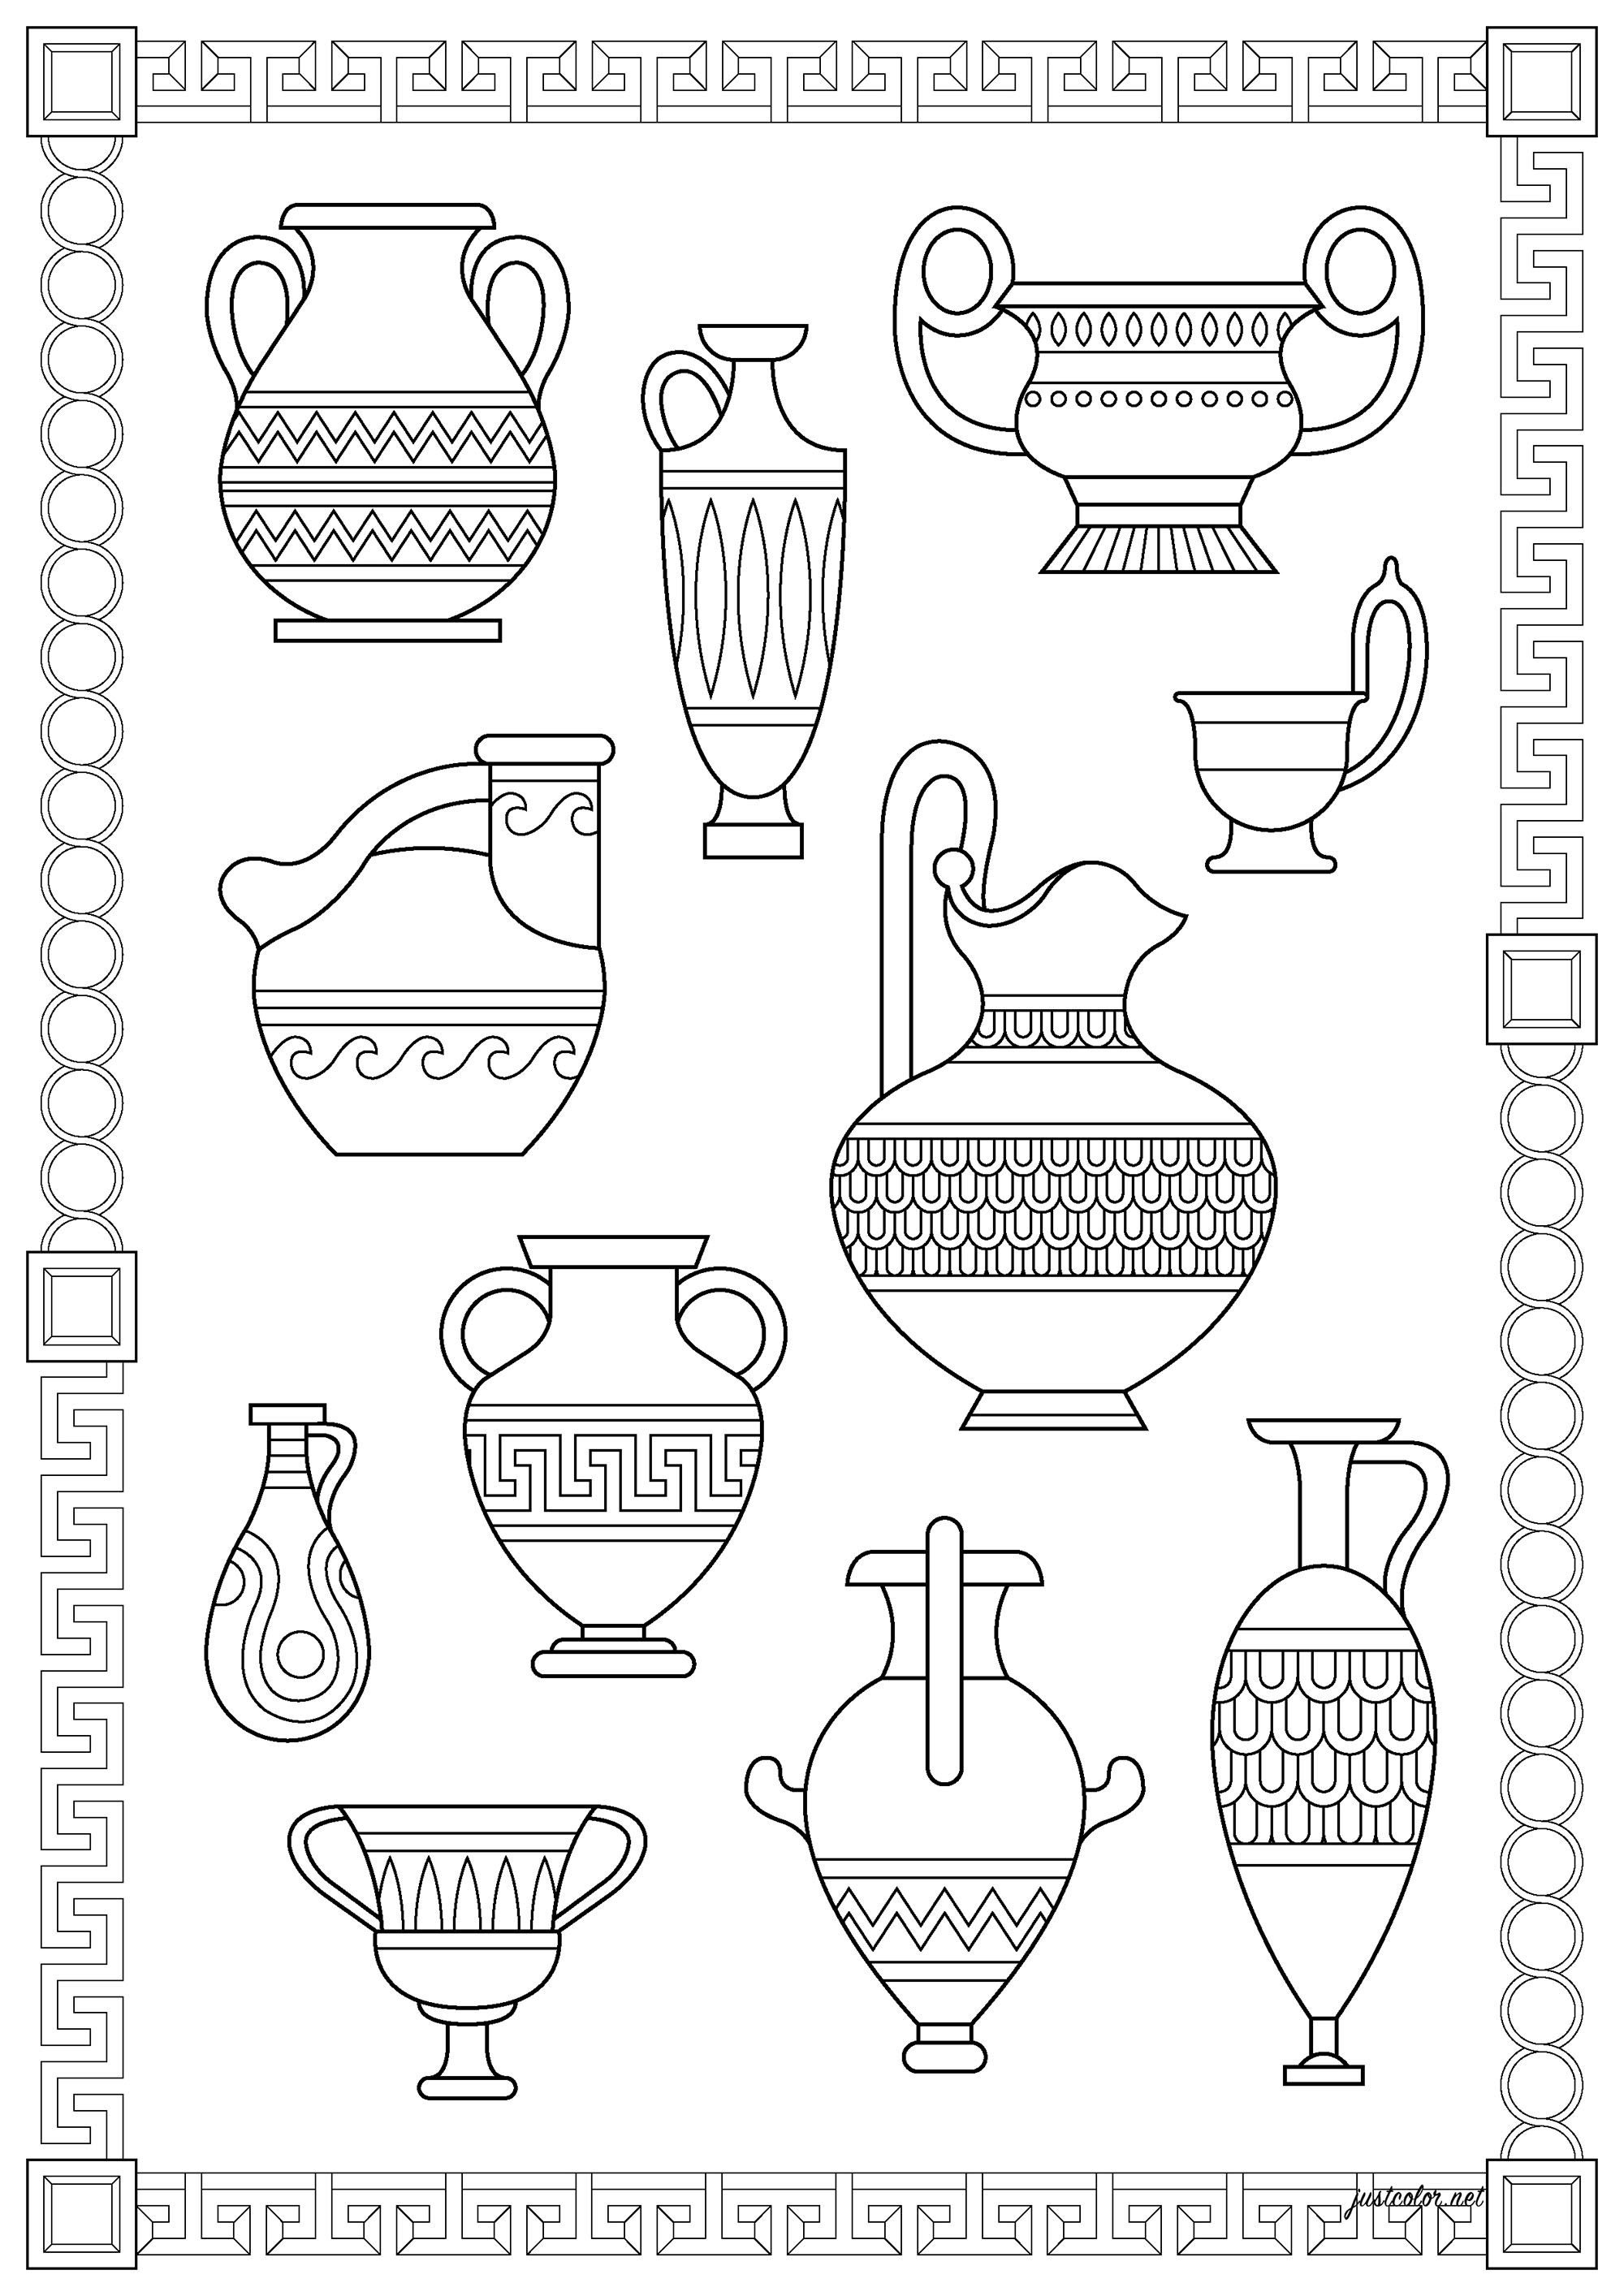 Inventory of different Greek vases. The pottery of ancient Greece from c. 1000 to c. 400 BCE provides some of the oldest and most diverse representations of the cultural beliefs and practices of the ancient Greeks and also some of the most distinctive vase shapes from antiquity.